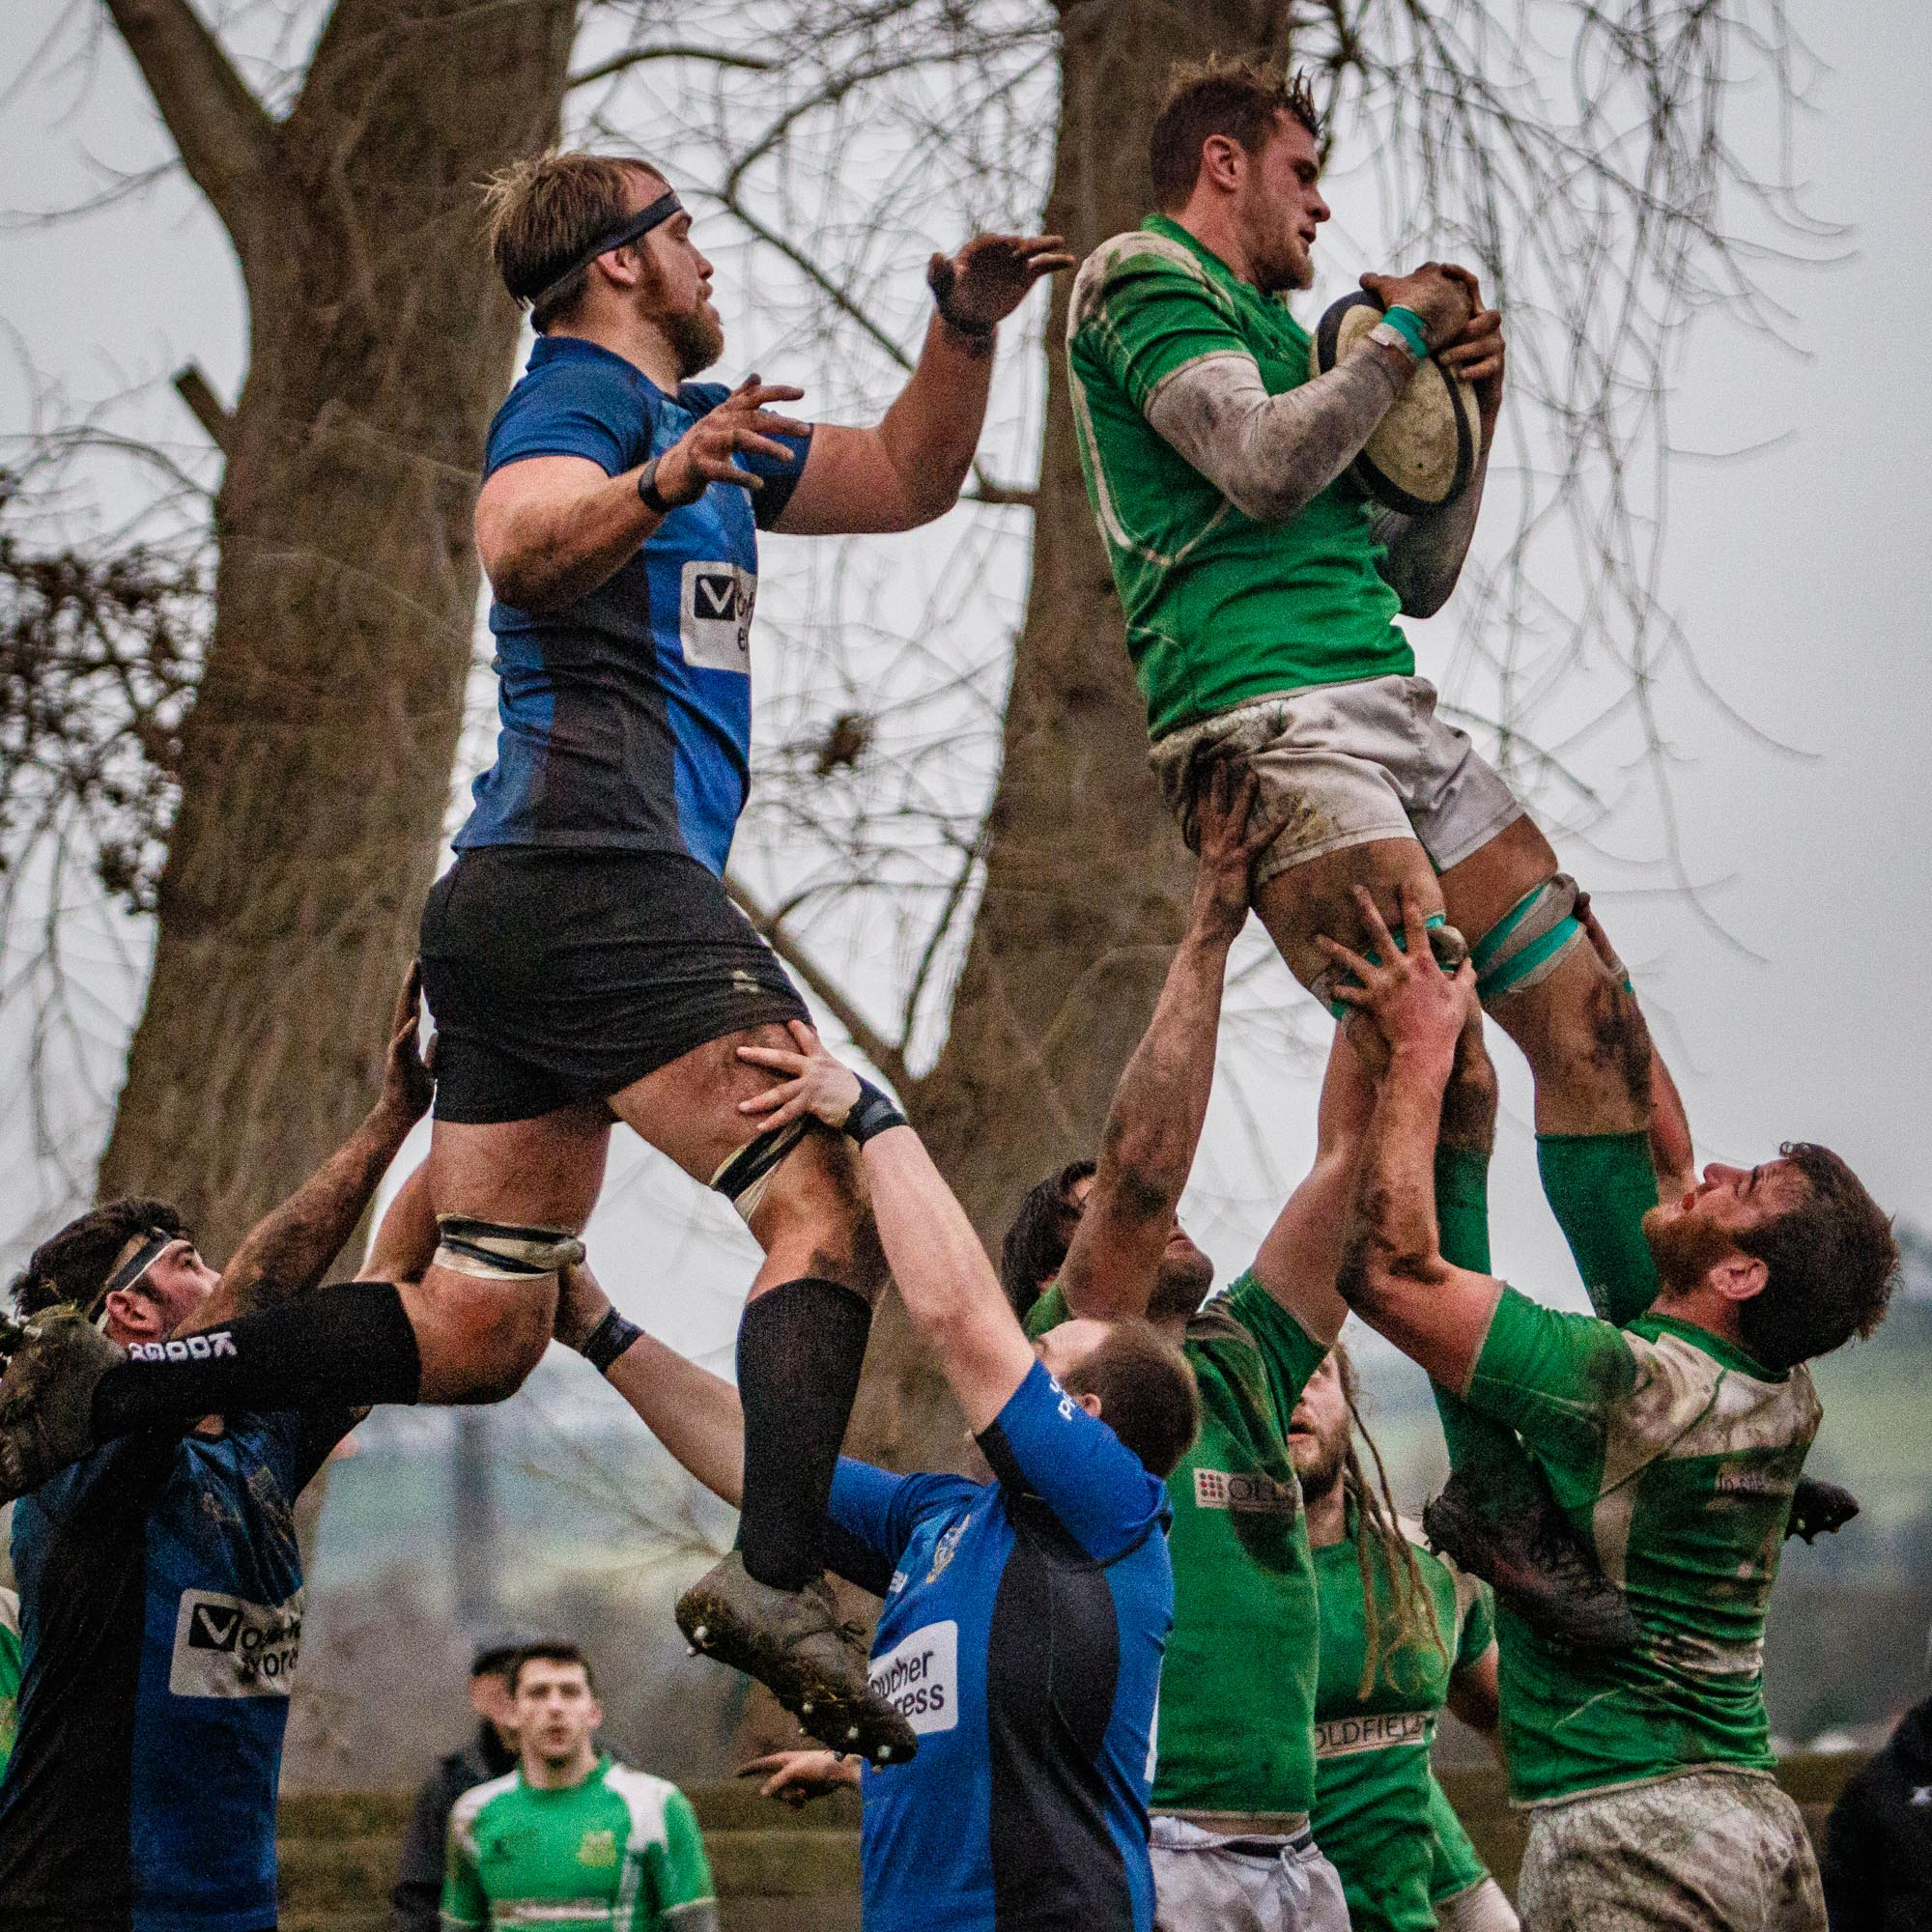 Otley's Brett Mitchell (left) and Wharfedale's George Hedgley - In The Trees